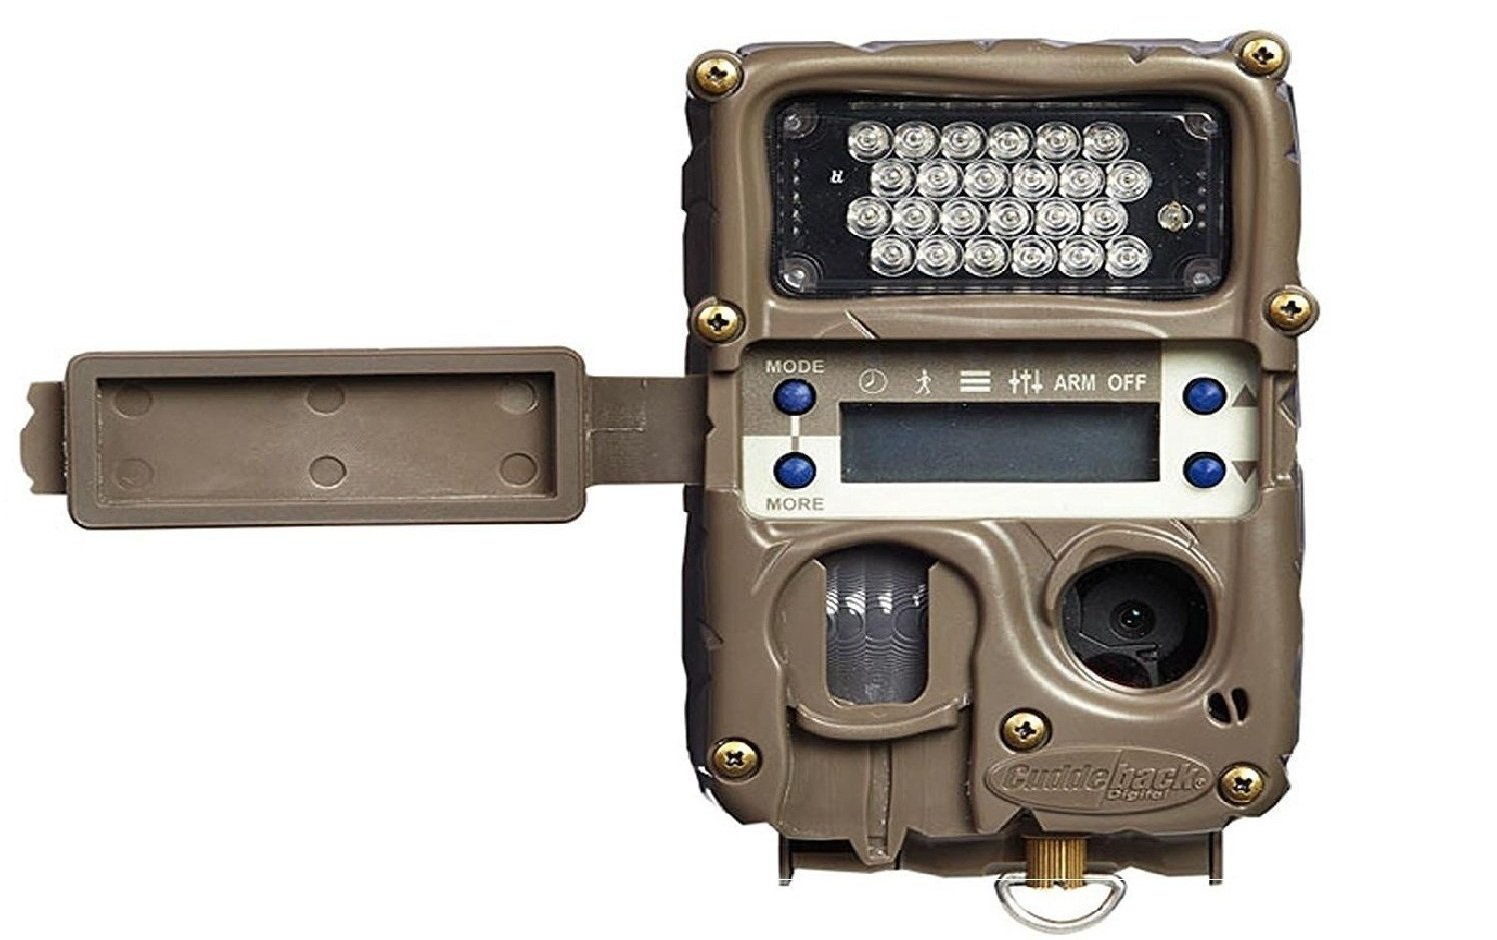 Cuddeback 20 MP Trail Game Hunting Camera Review